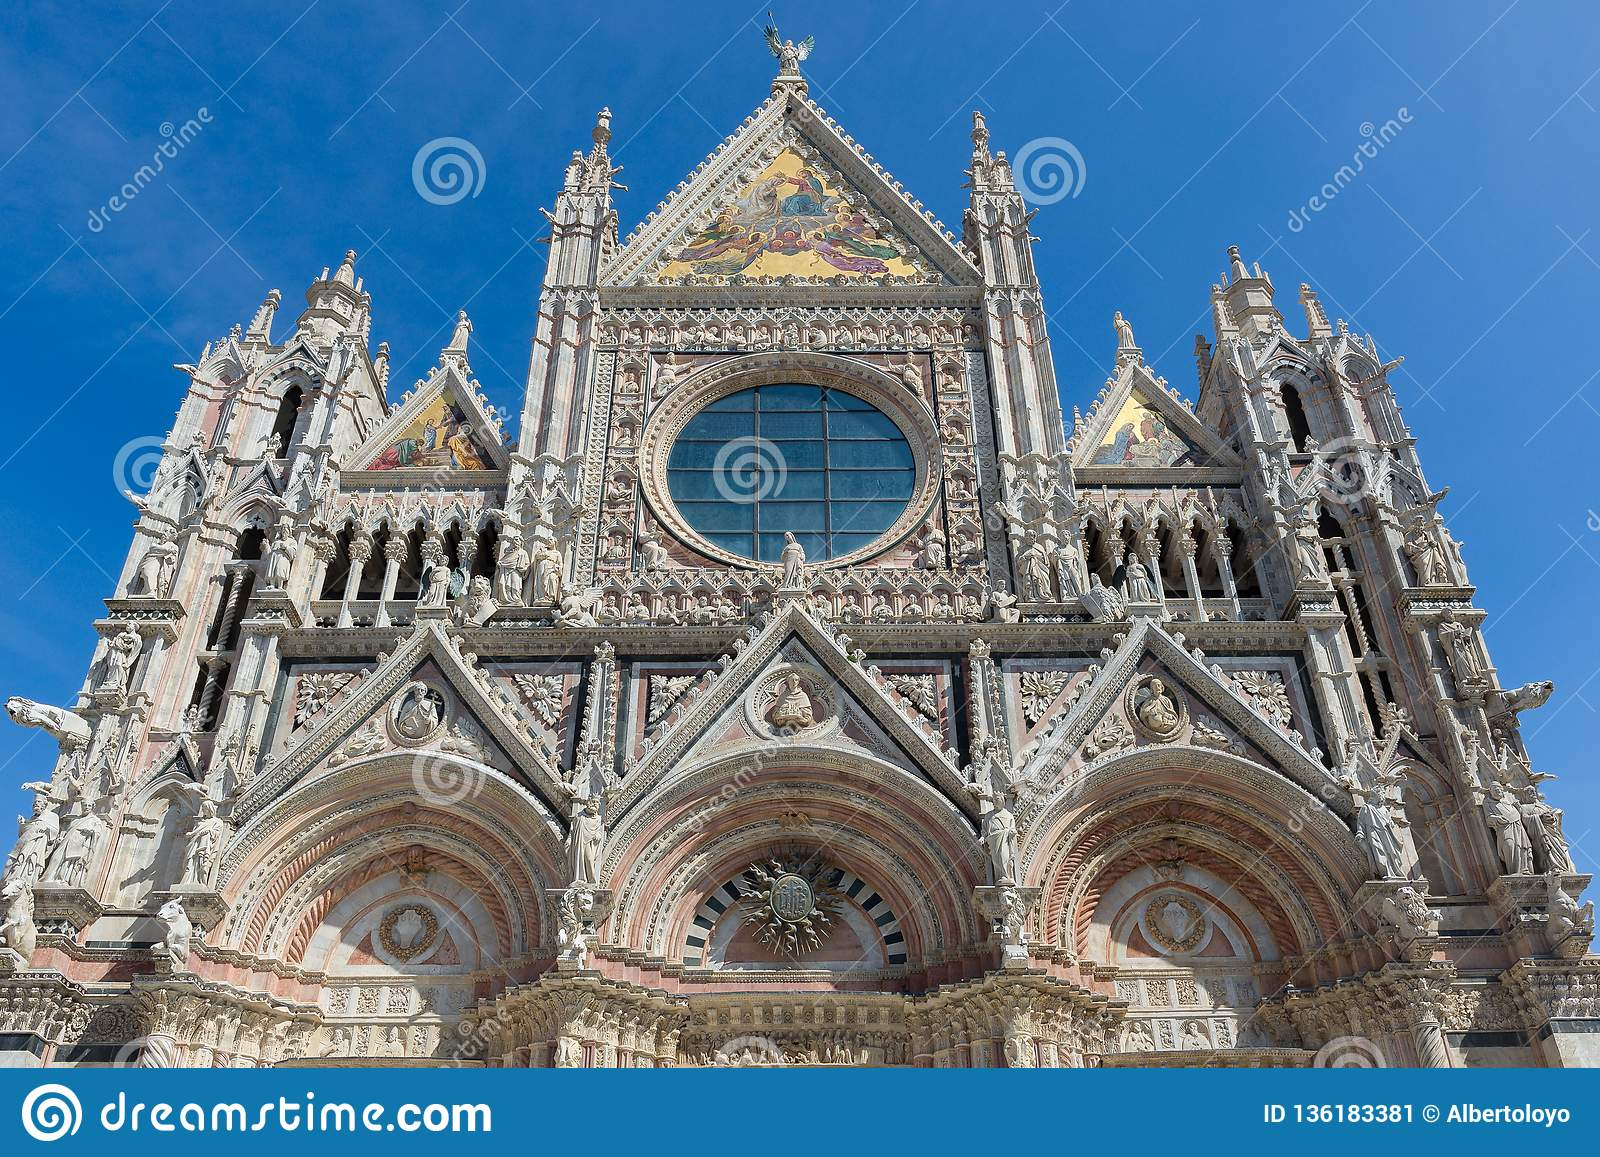 Siena Cathedral, dedicated to the Assumption of the Blessed Virgin Mary